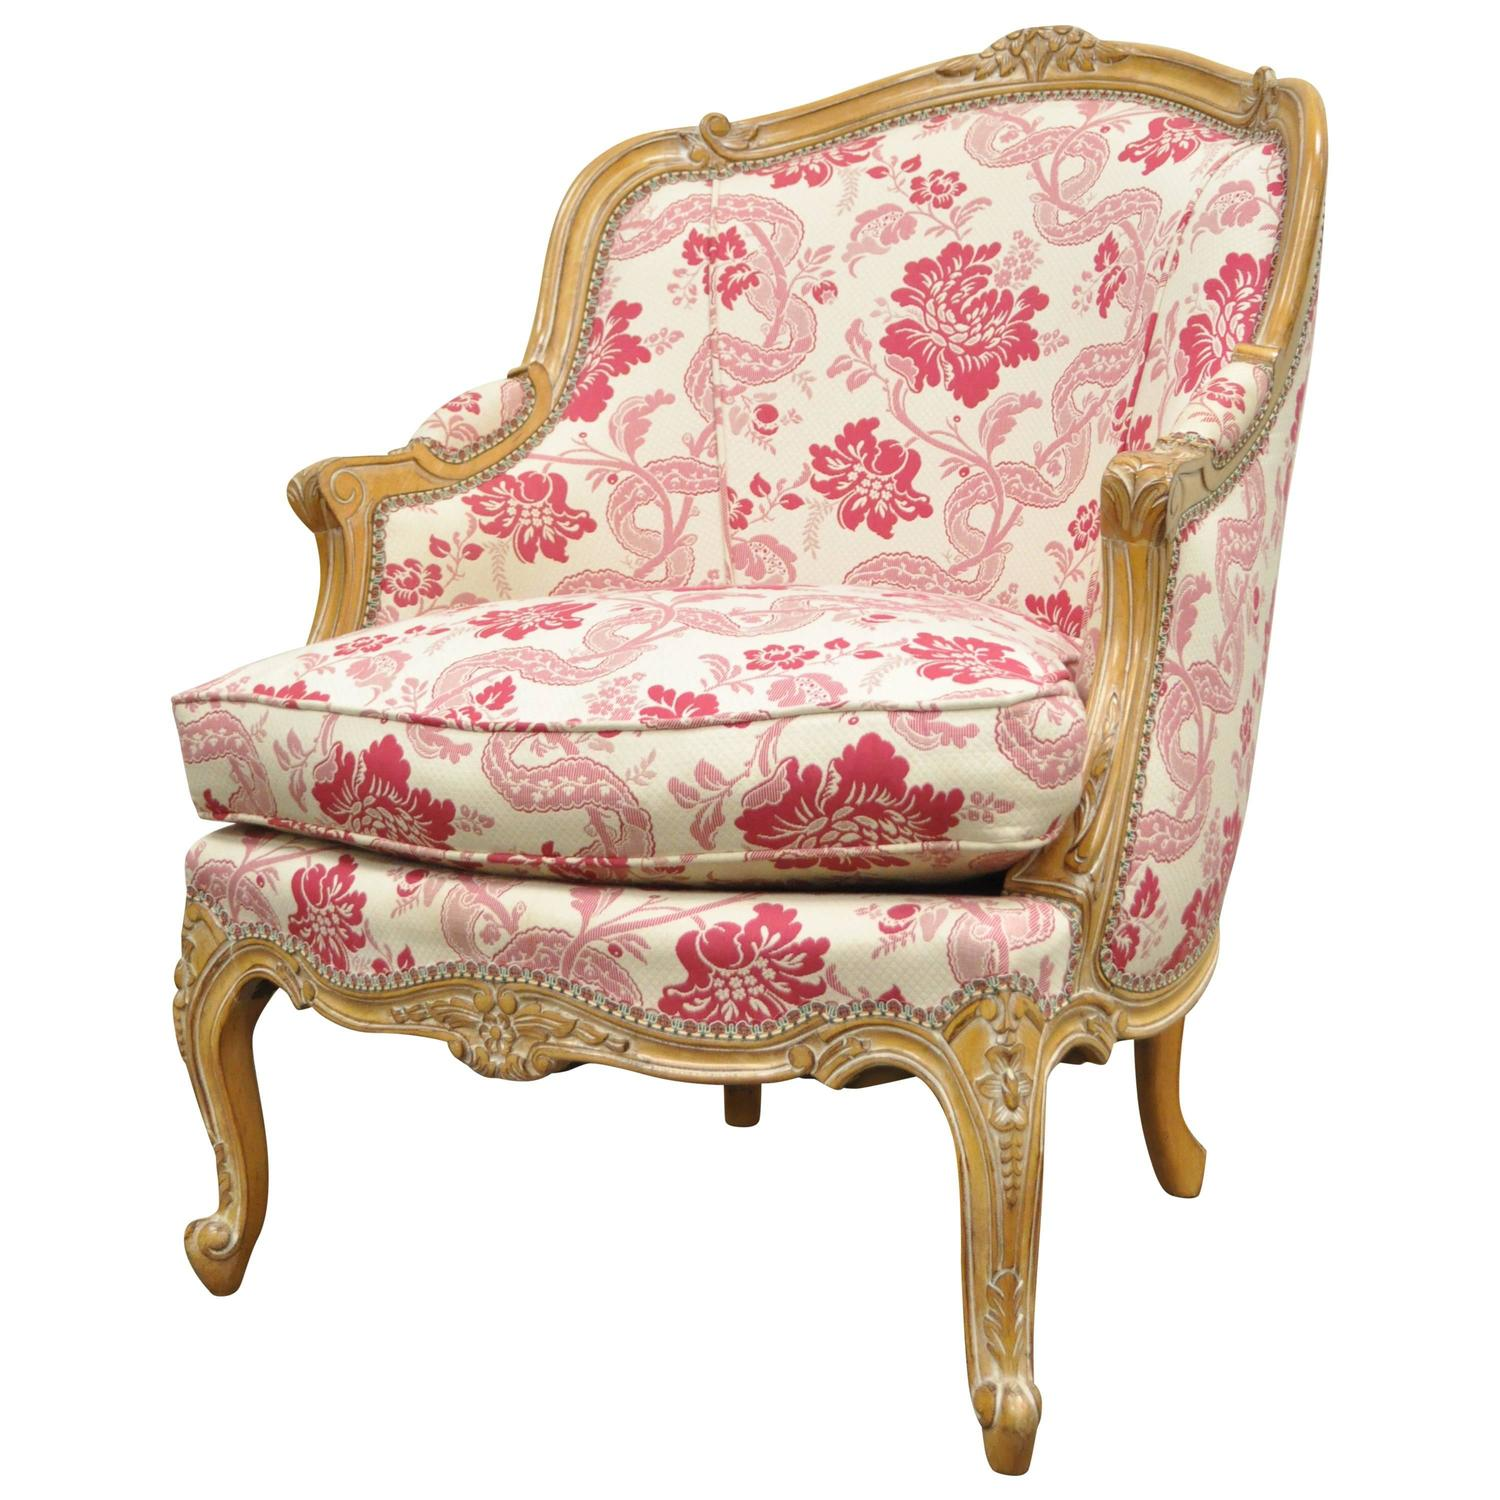 20th Century Finely Carved French Louis XV Style Bergere Lounge